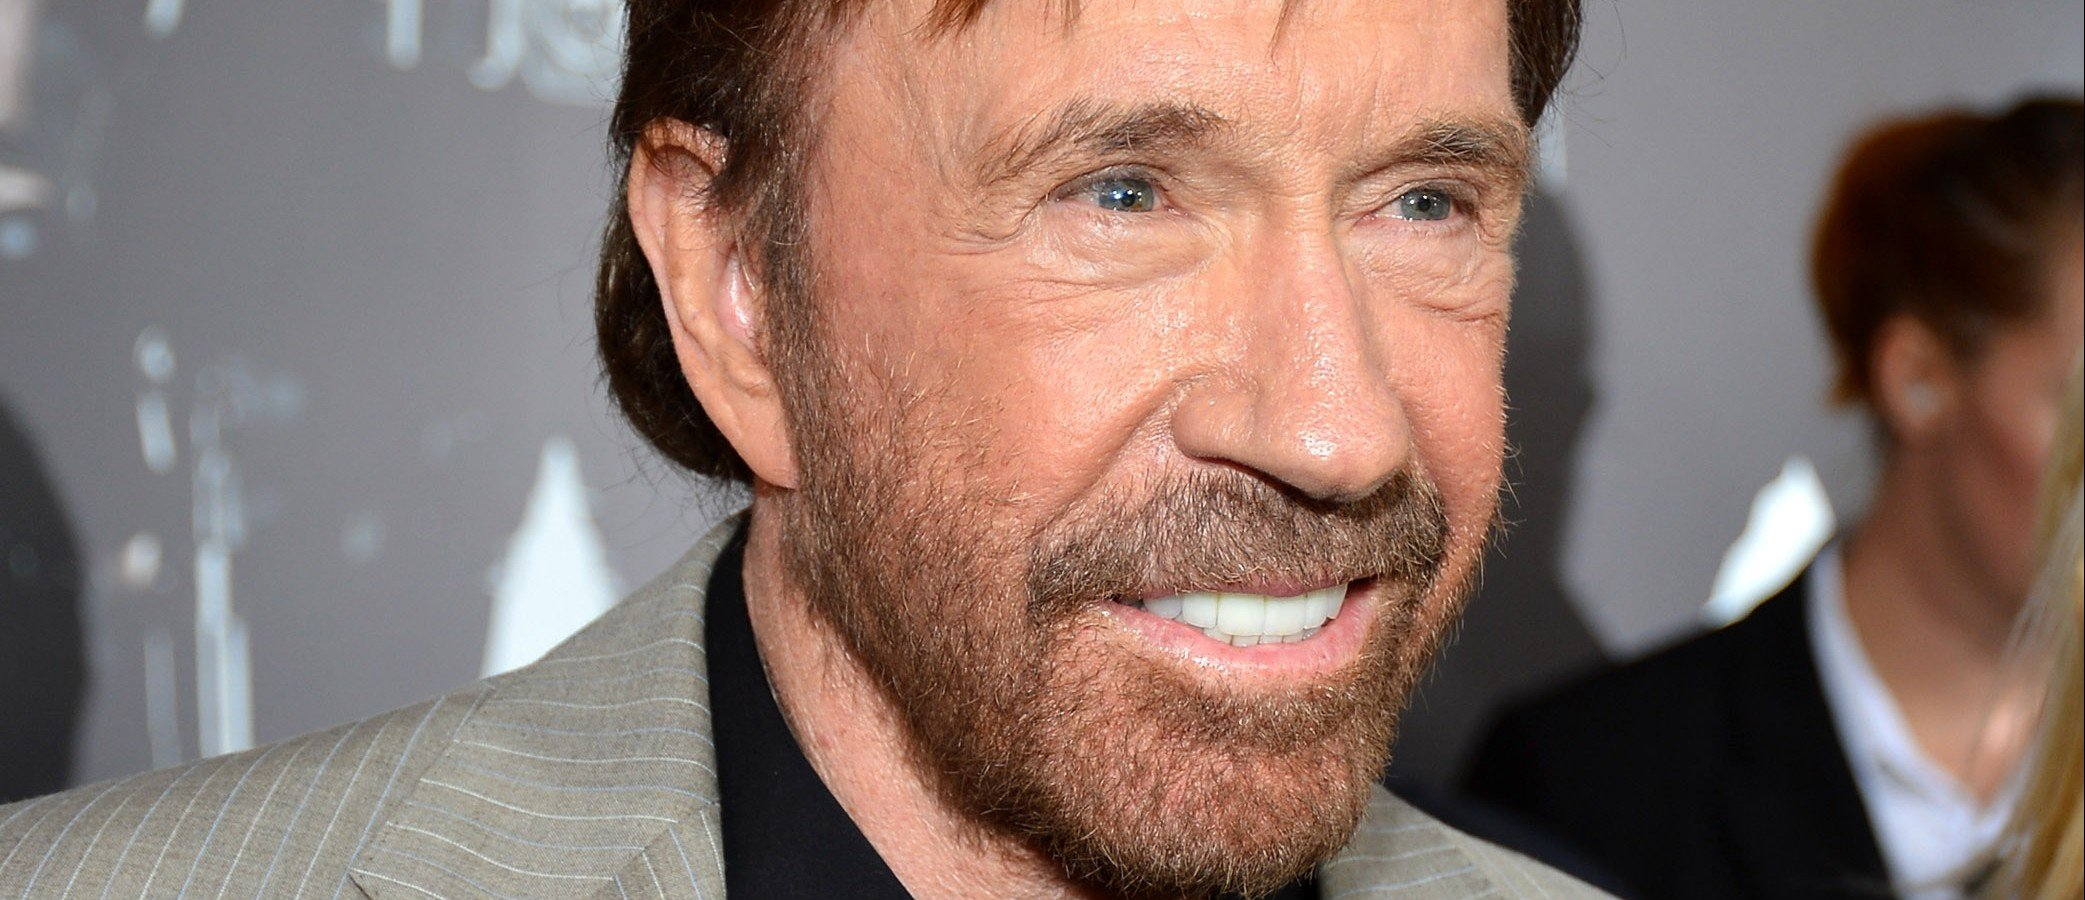 Chuck Norris campaigns for Ted Cruz